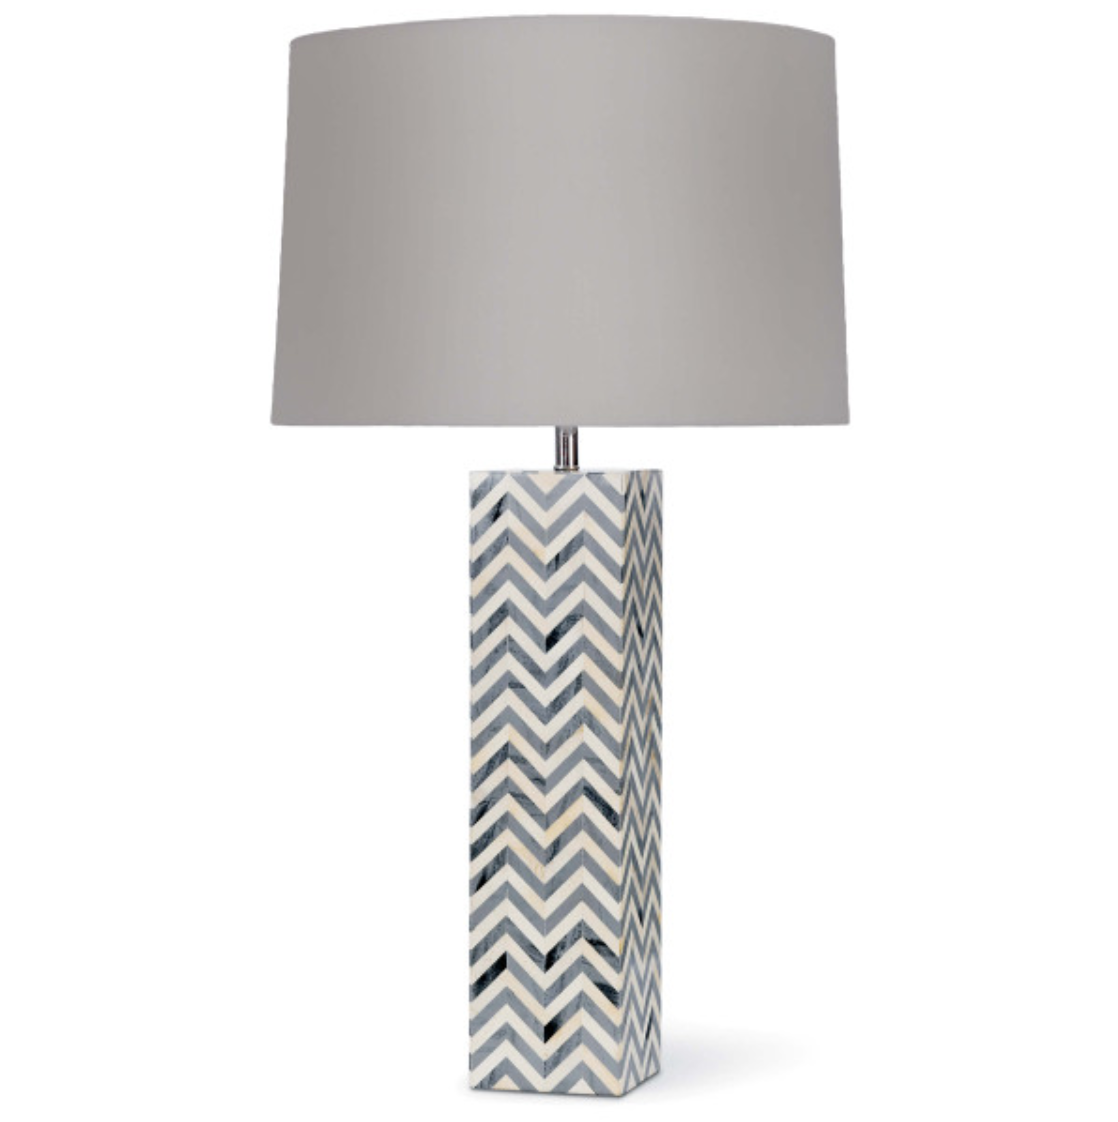 Chevron Table Lamp